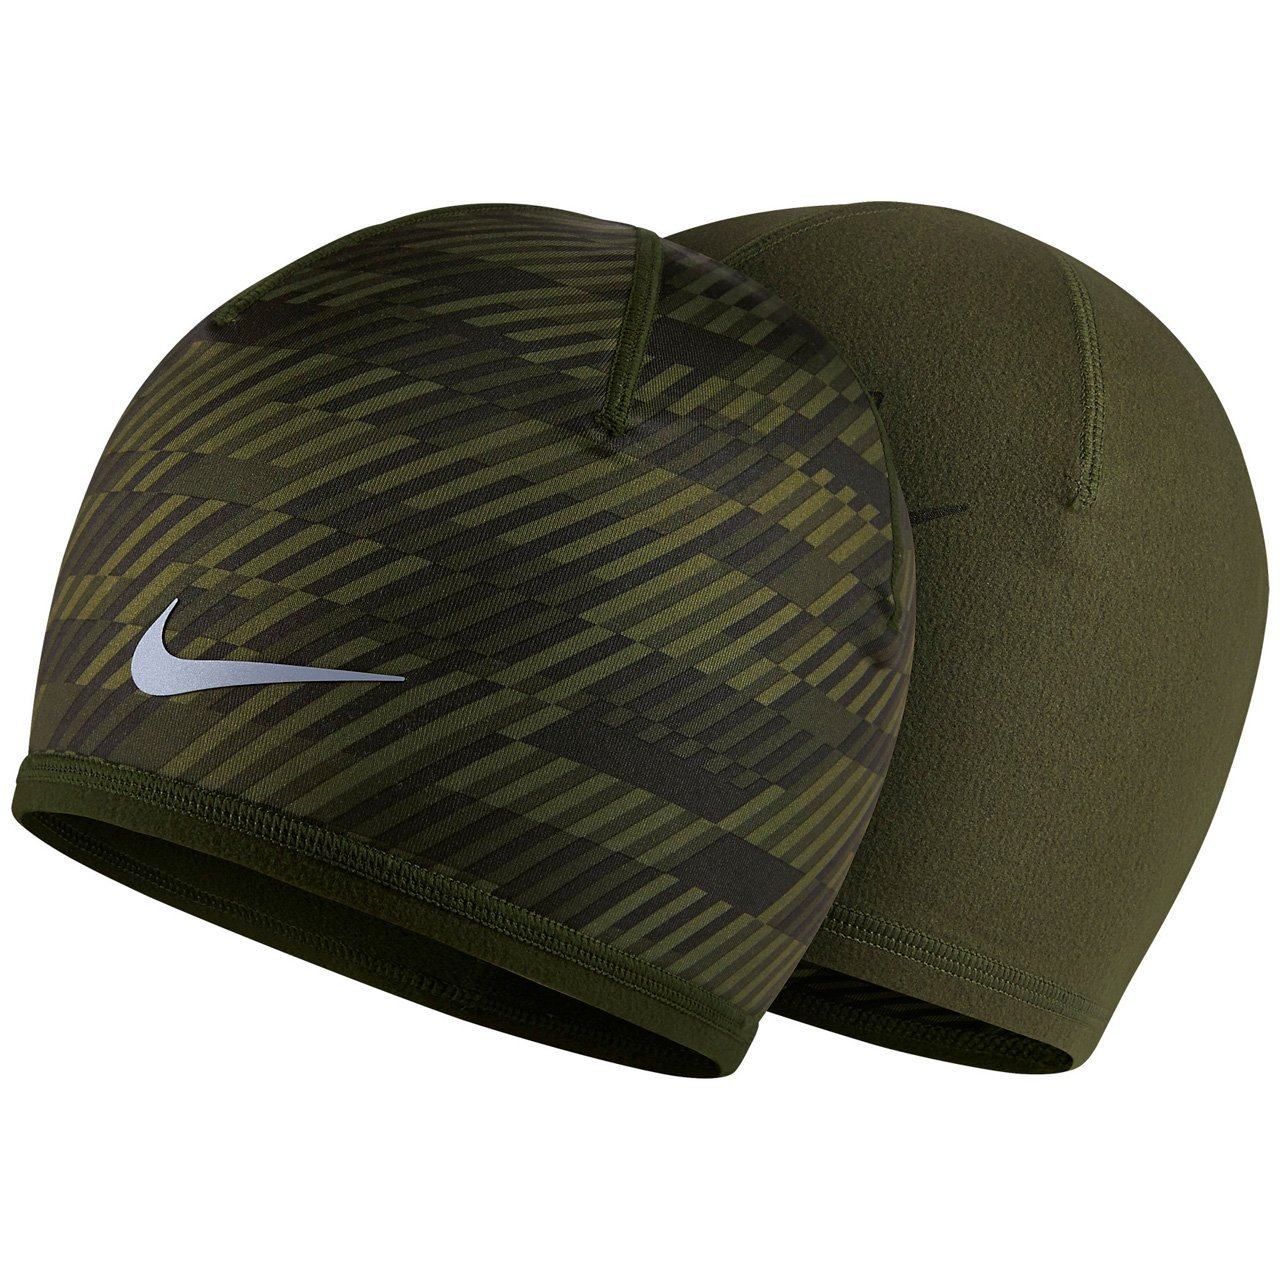 Shop the full selection of Men's Running Hats online today at DICK'S Sporting Goods. Browse men's running hats from Nike, Under Armour, Brooks & more top-rated brands.